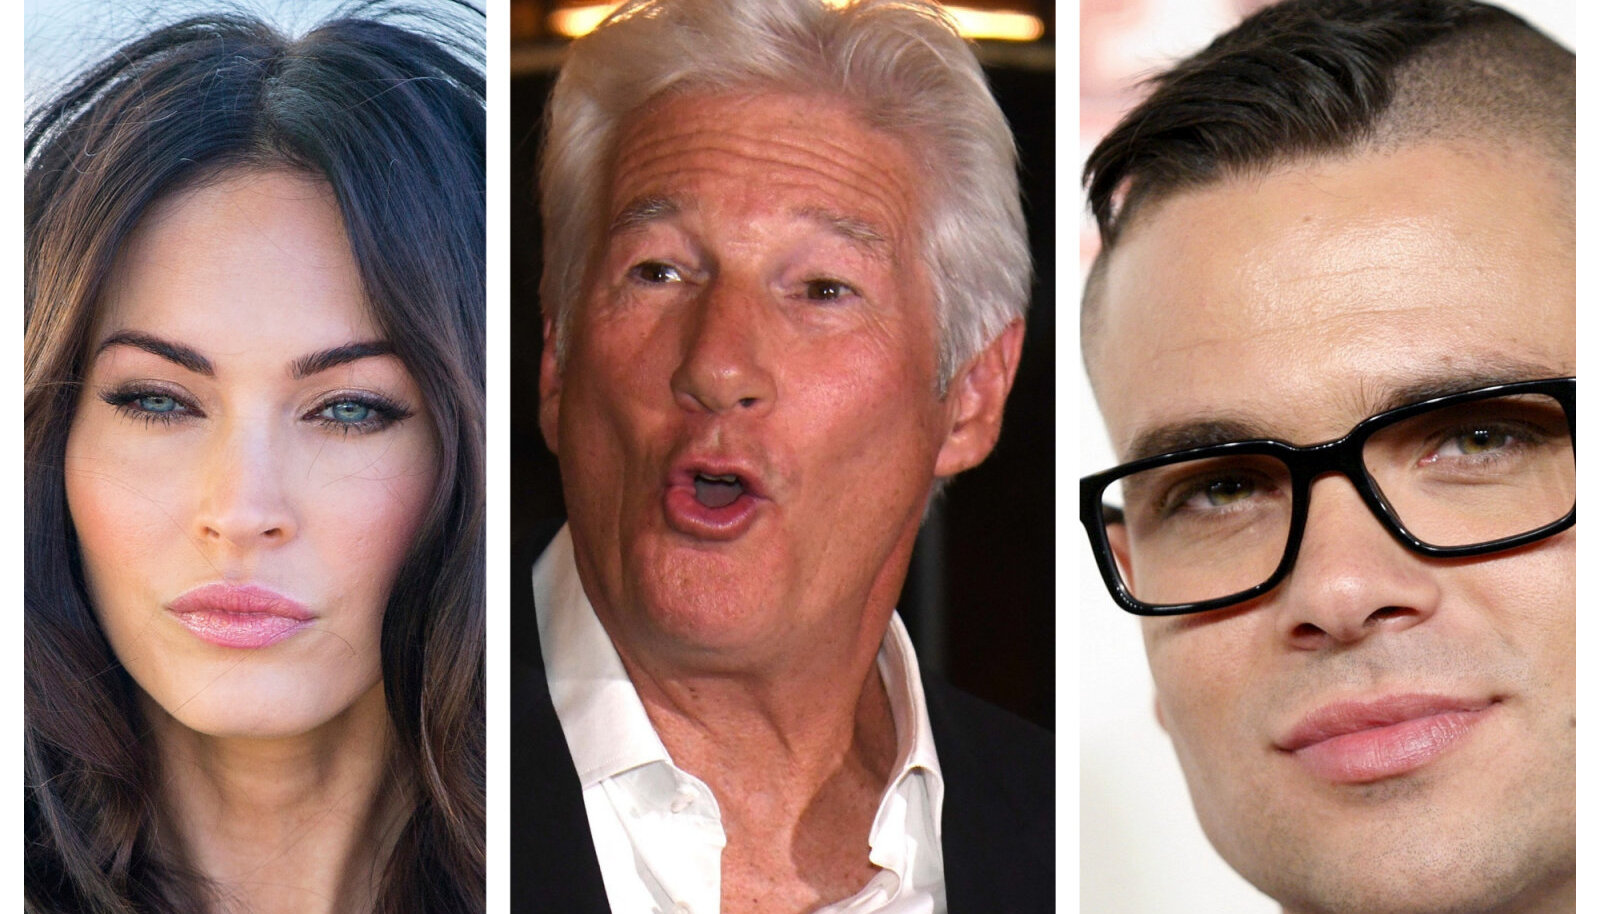 Megan Fox/Richard Gere/Mark Salling